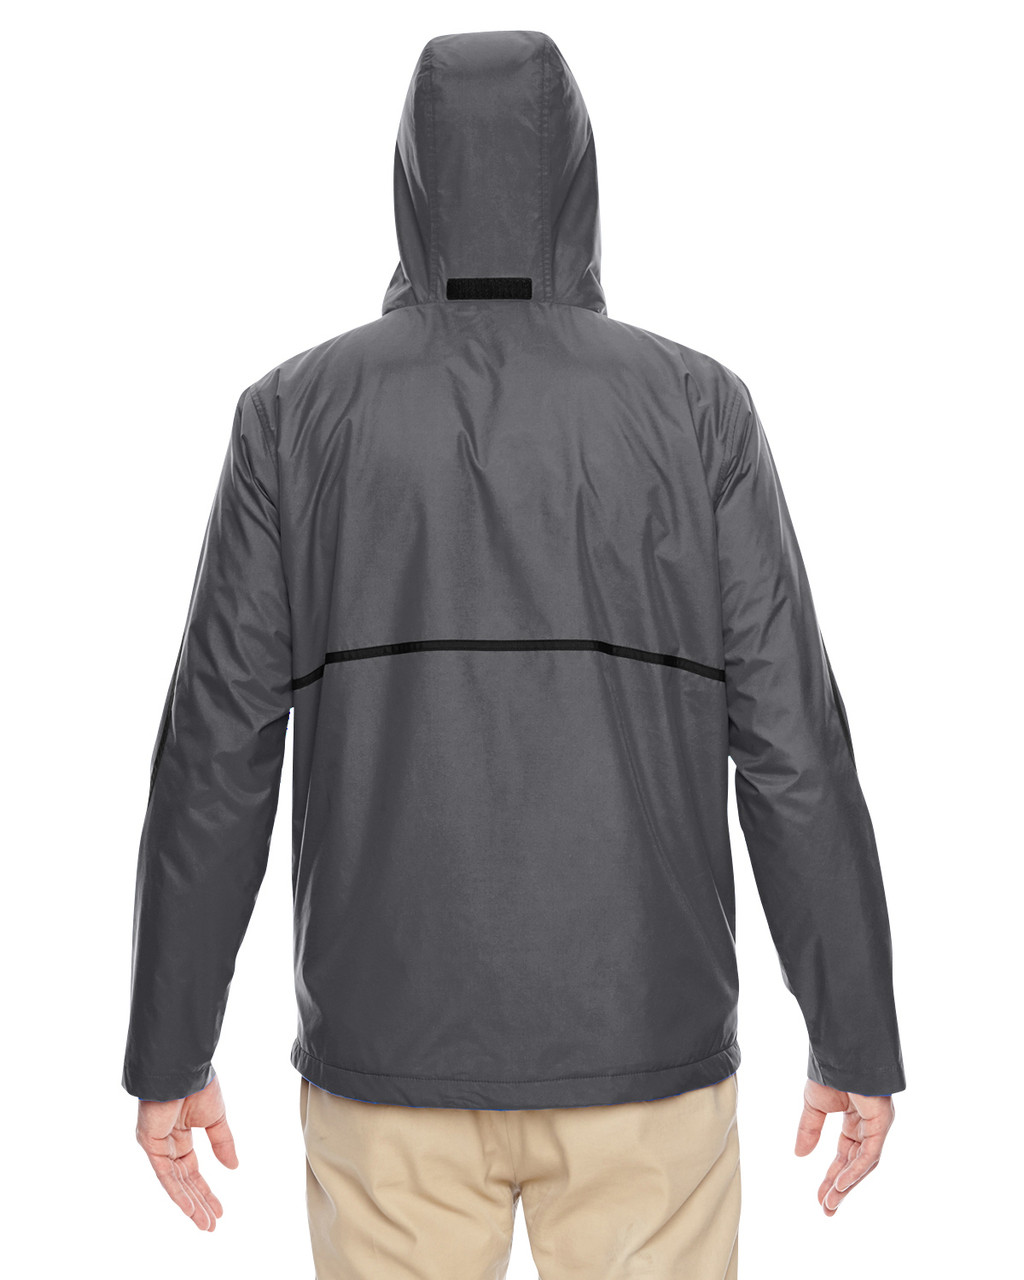 Sport Graphite-back TT72 Team 365 Conquest Jacket with Fleece Lining